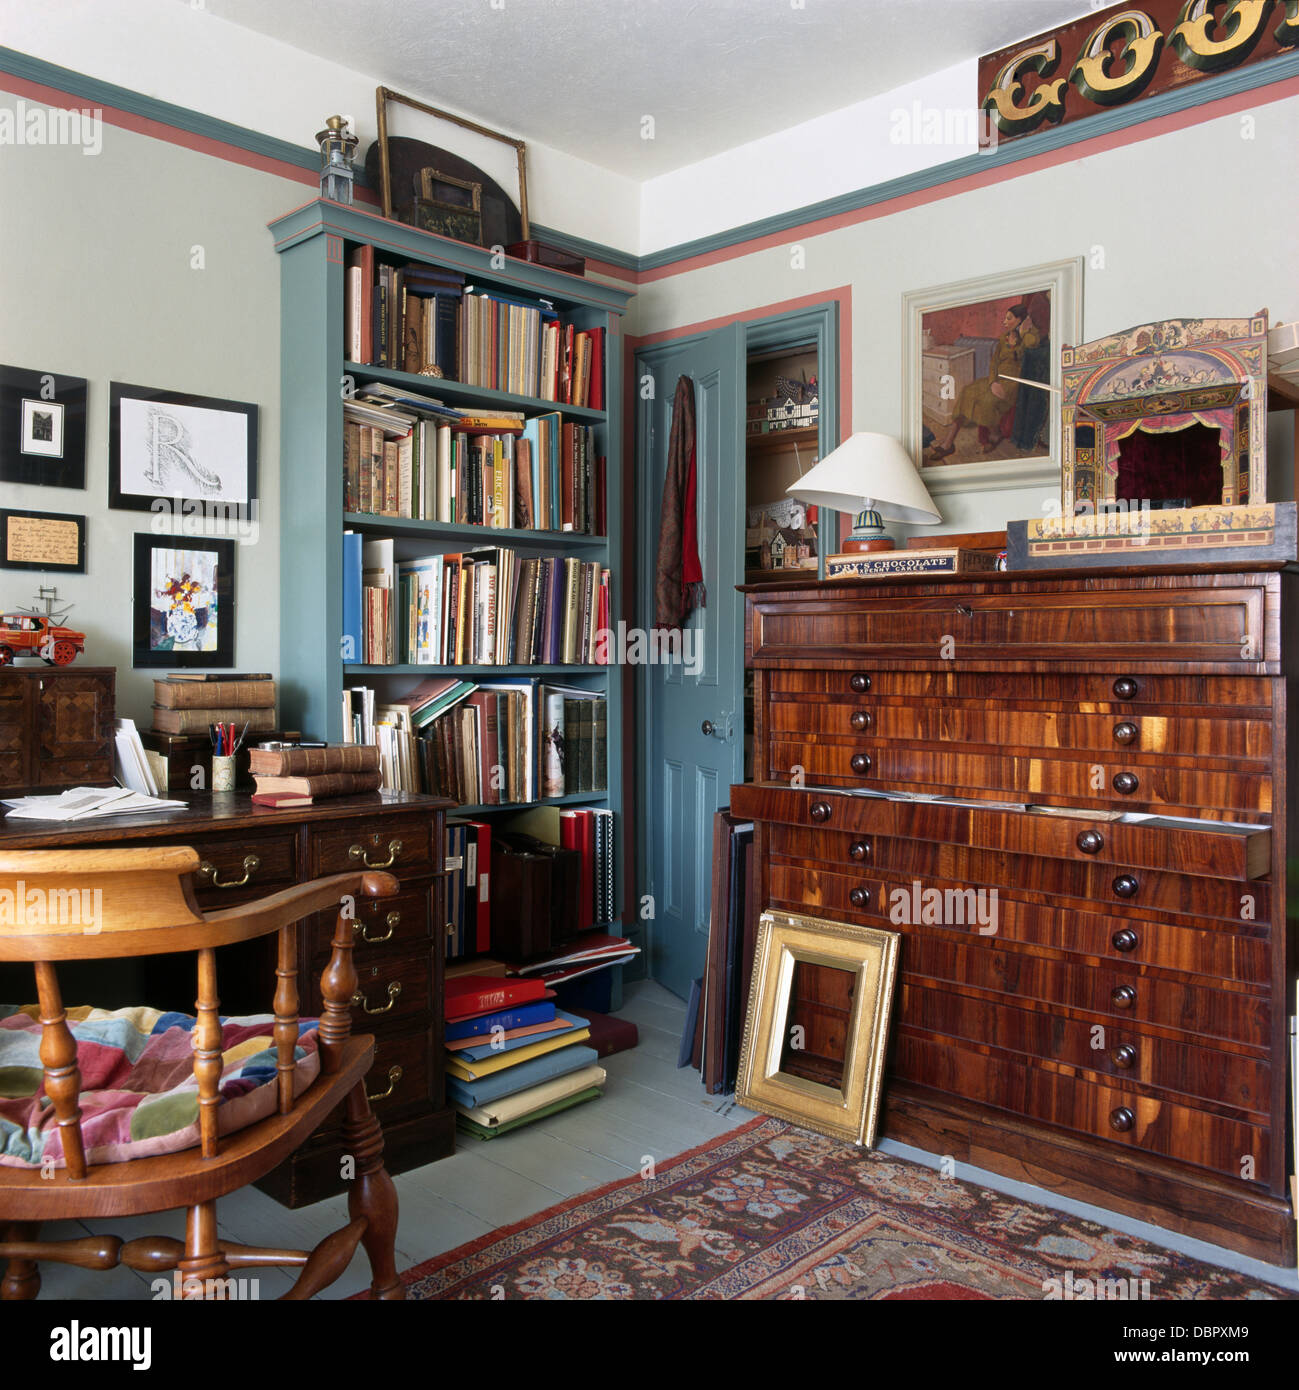 Antique Plans Chest And Blue Painted Bookcase In Old